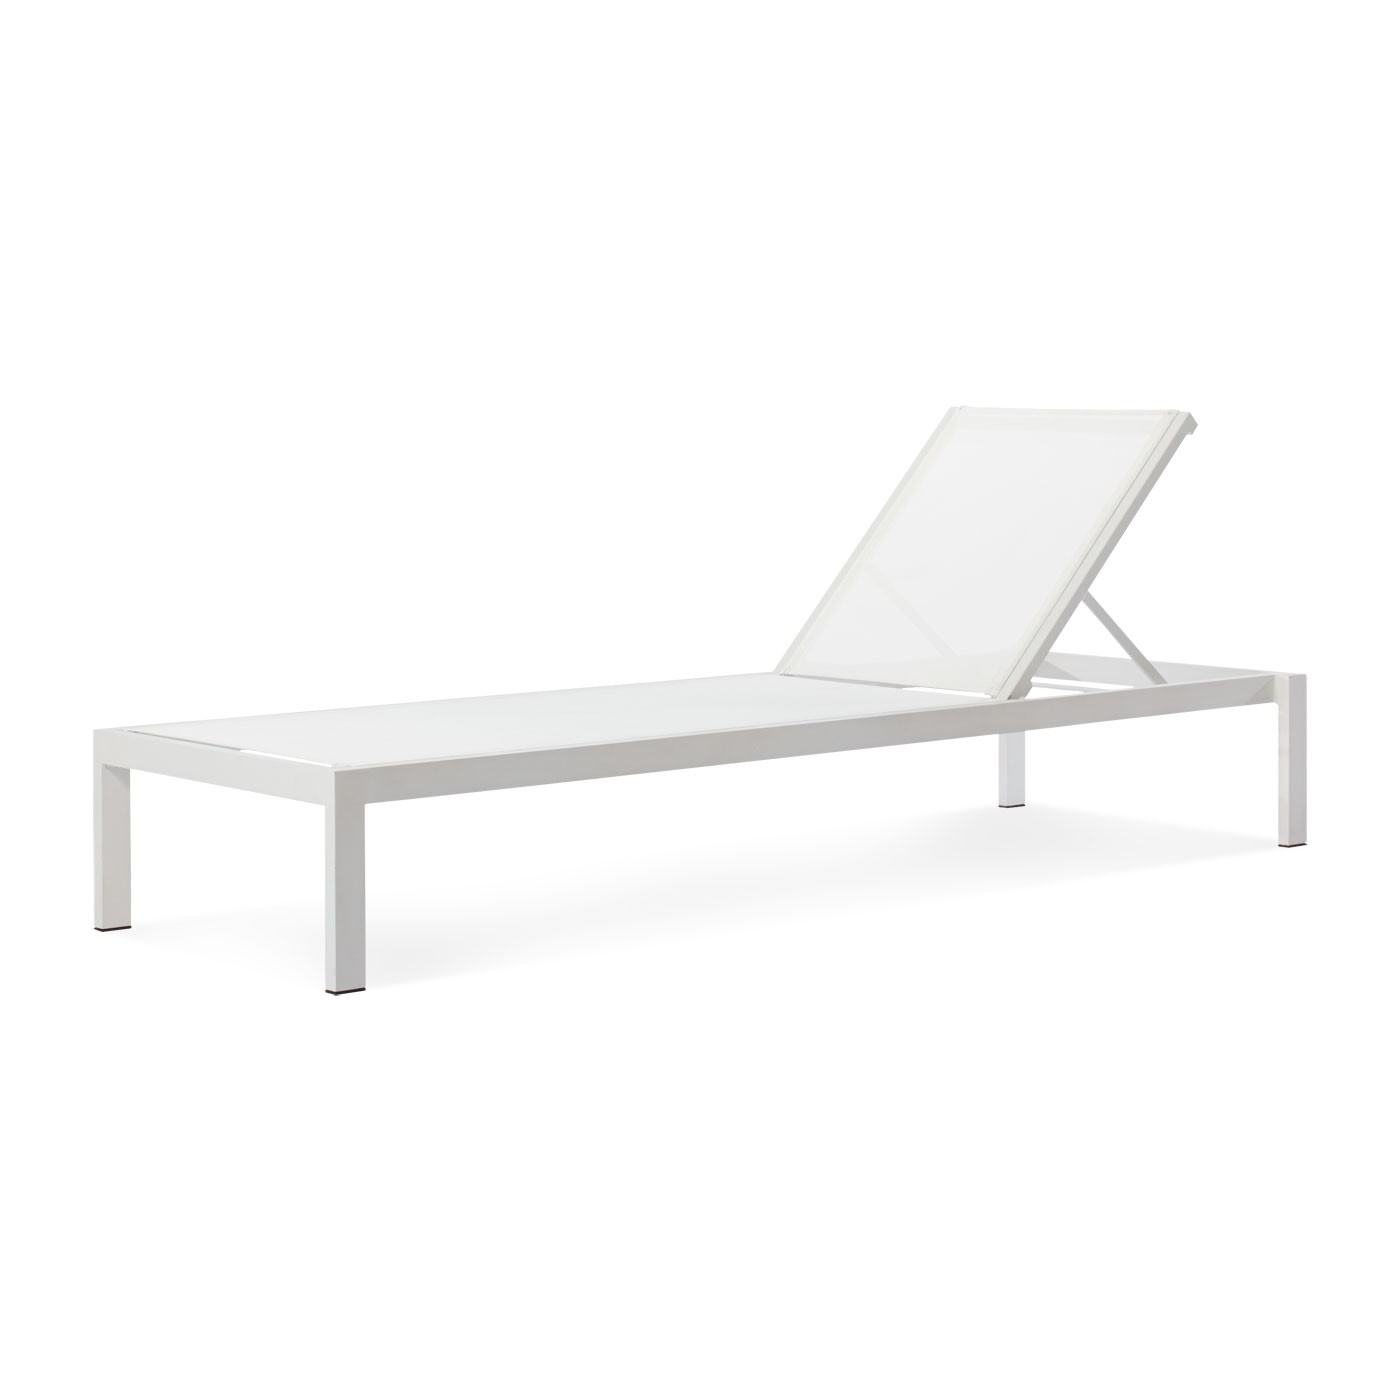 P Pertaining To Newest Chaise Lounge Sun Chairs (View 13 of 15)